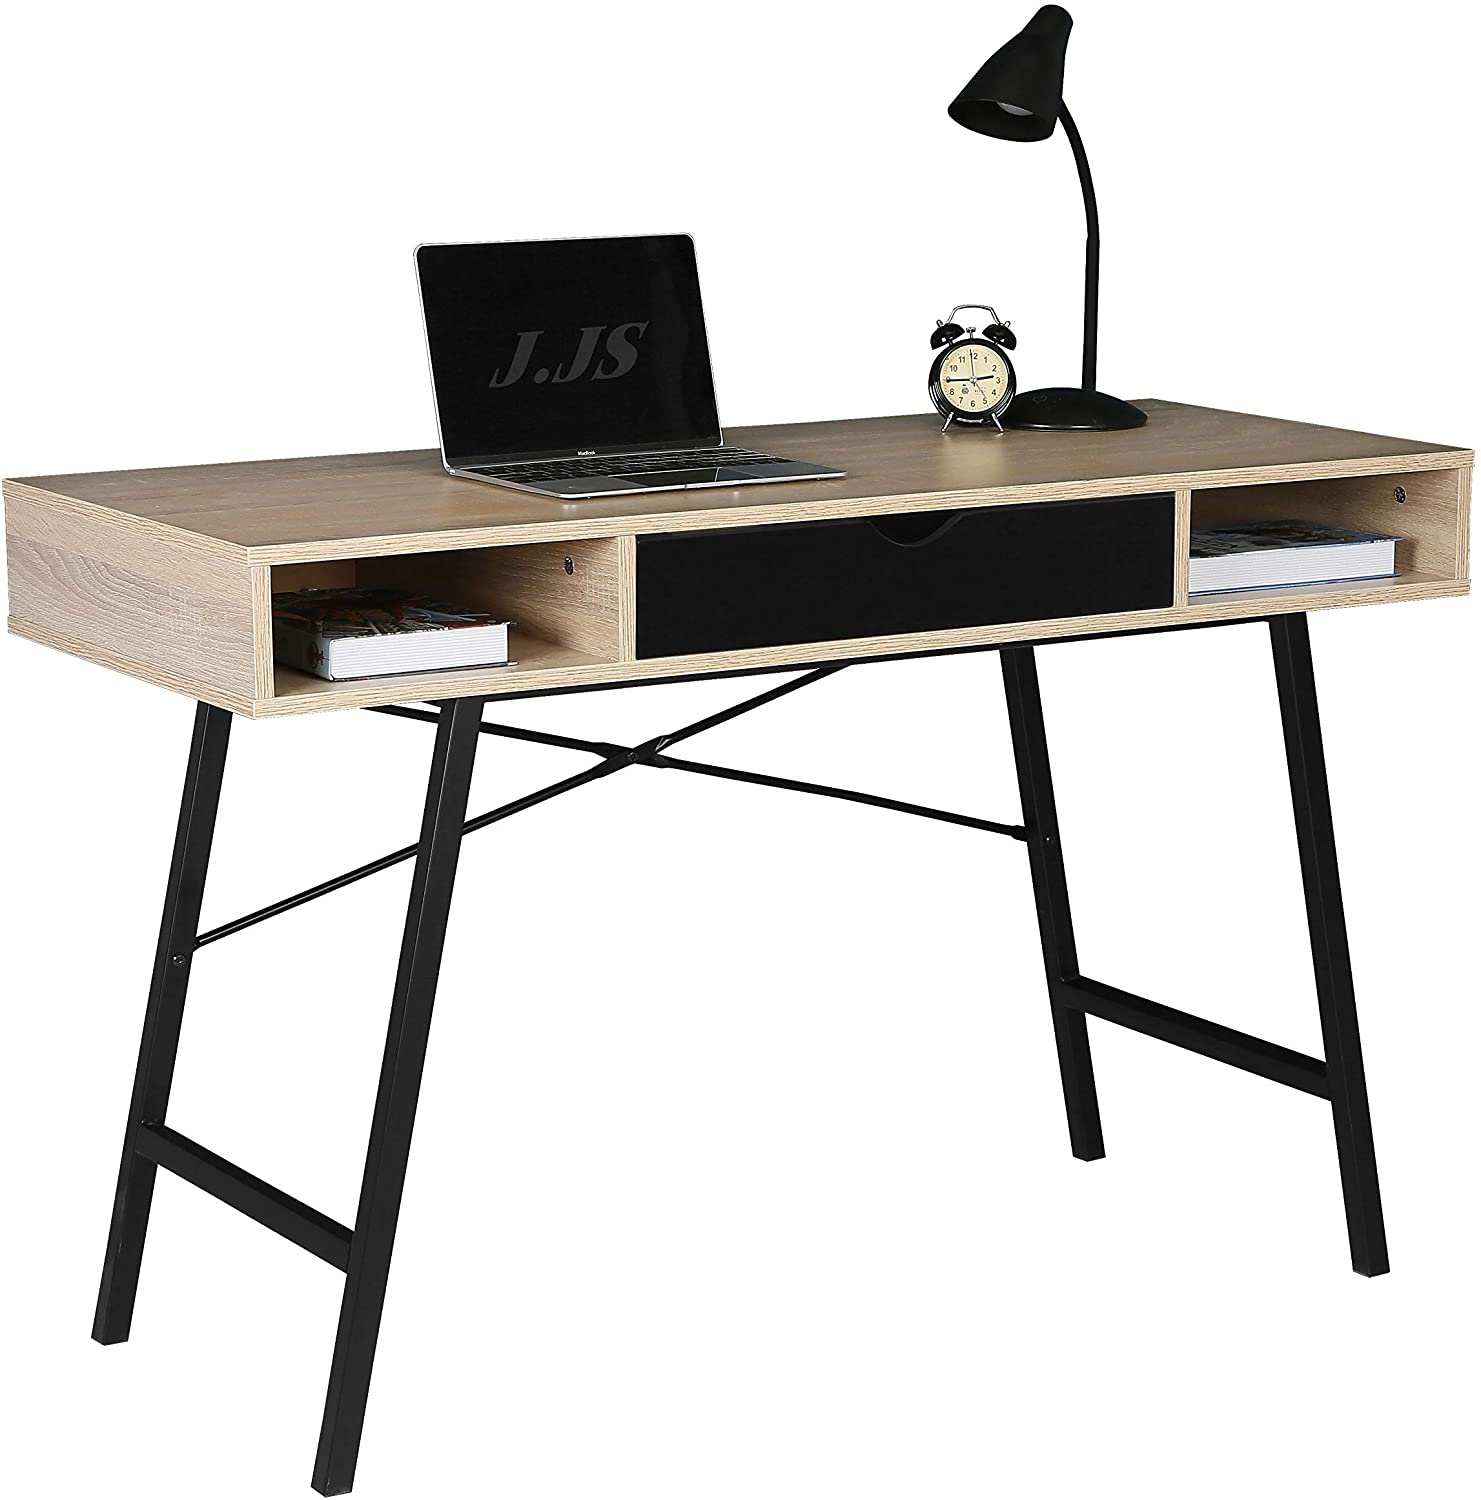 JJS Home Office Writing Desk with Drawers, Modern Computer Study Wooden Desk Table Laptop PC Workstation with Storage, Mid Century Black